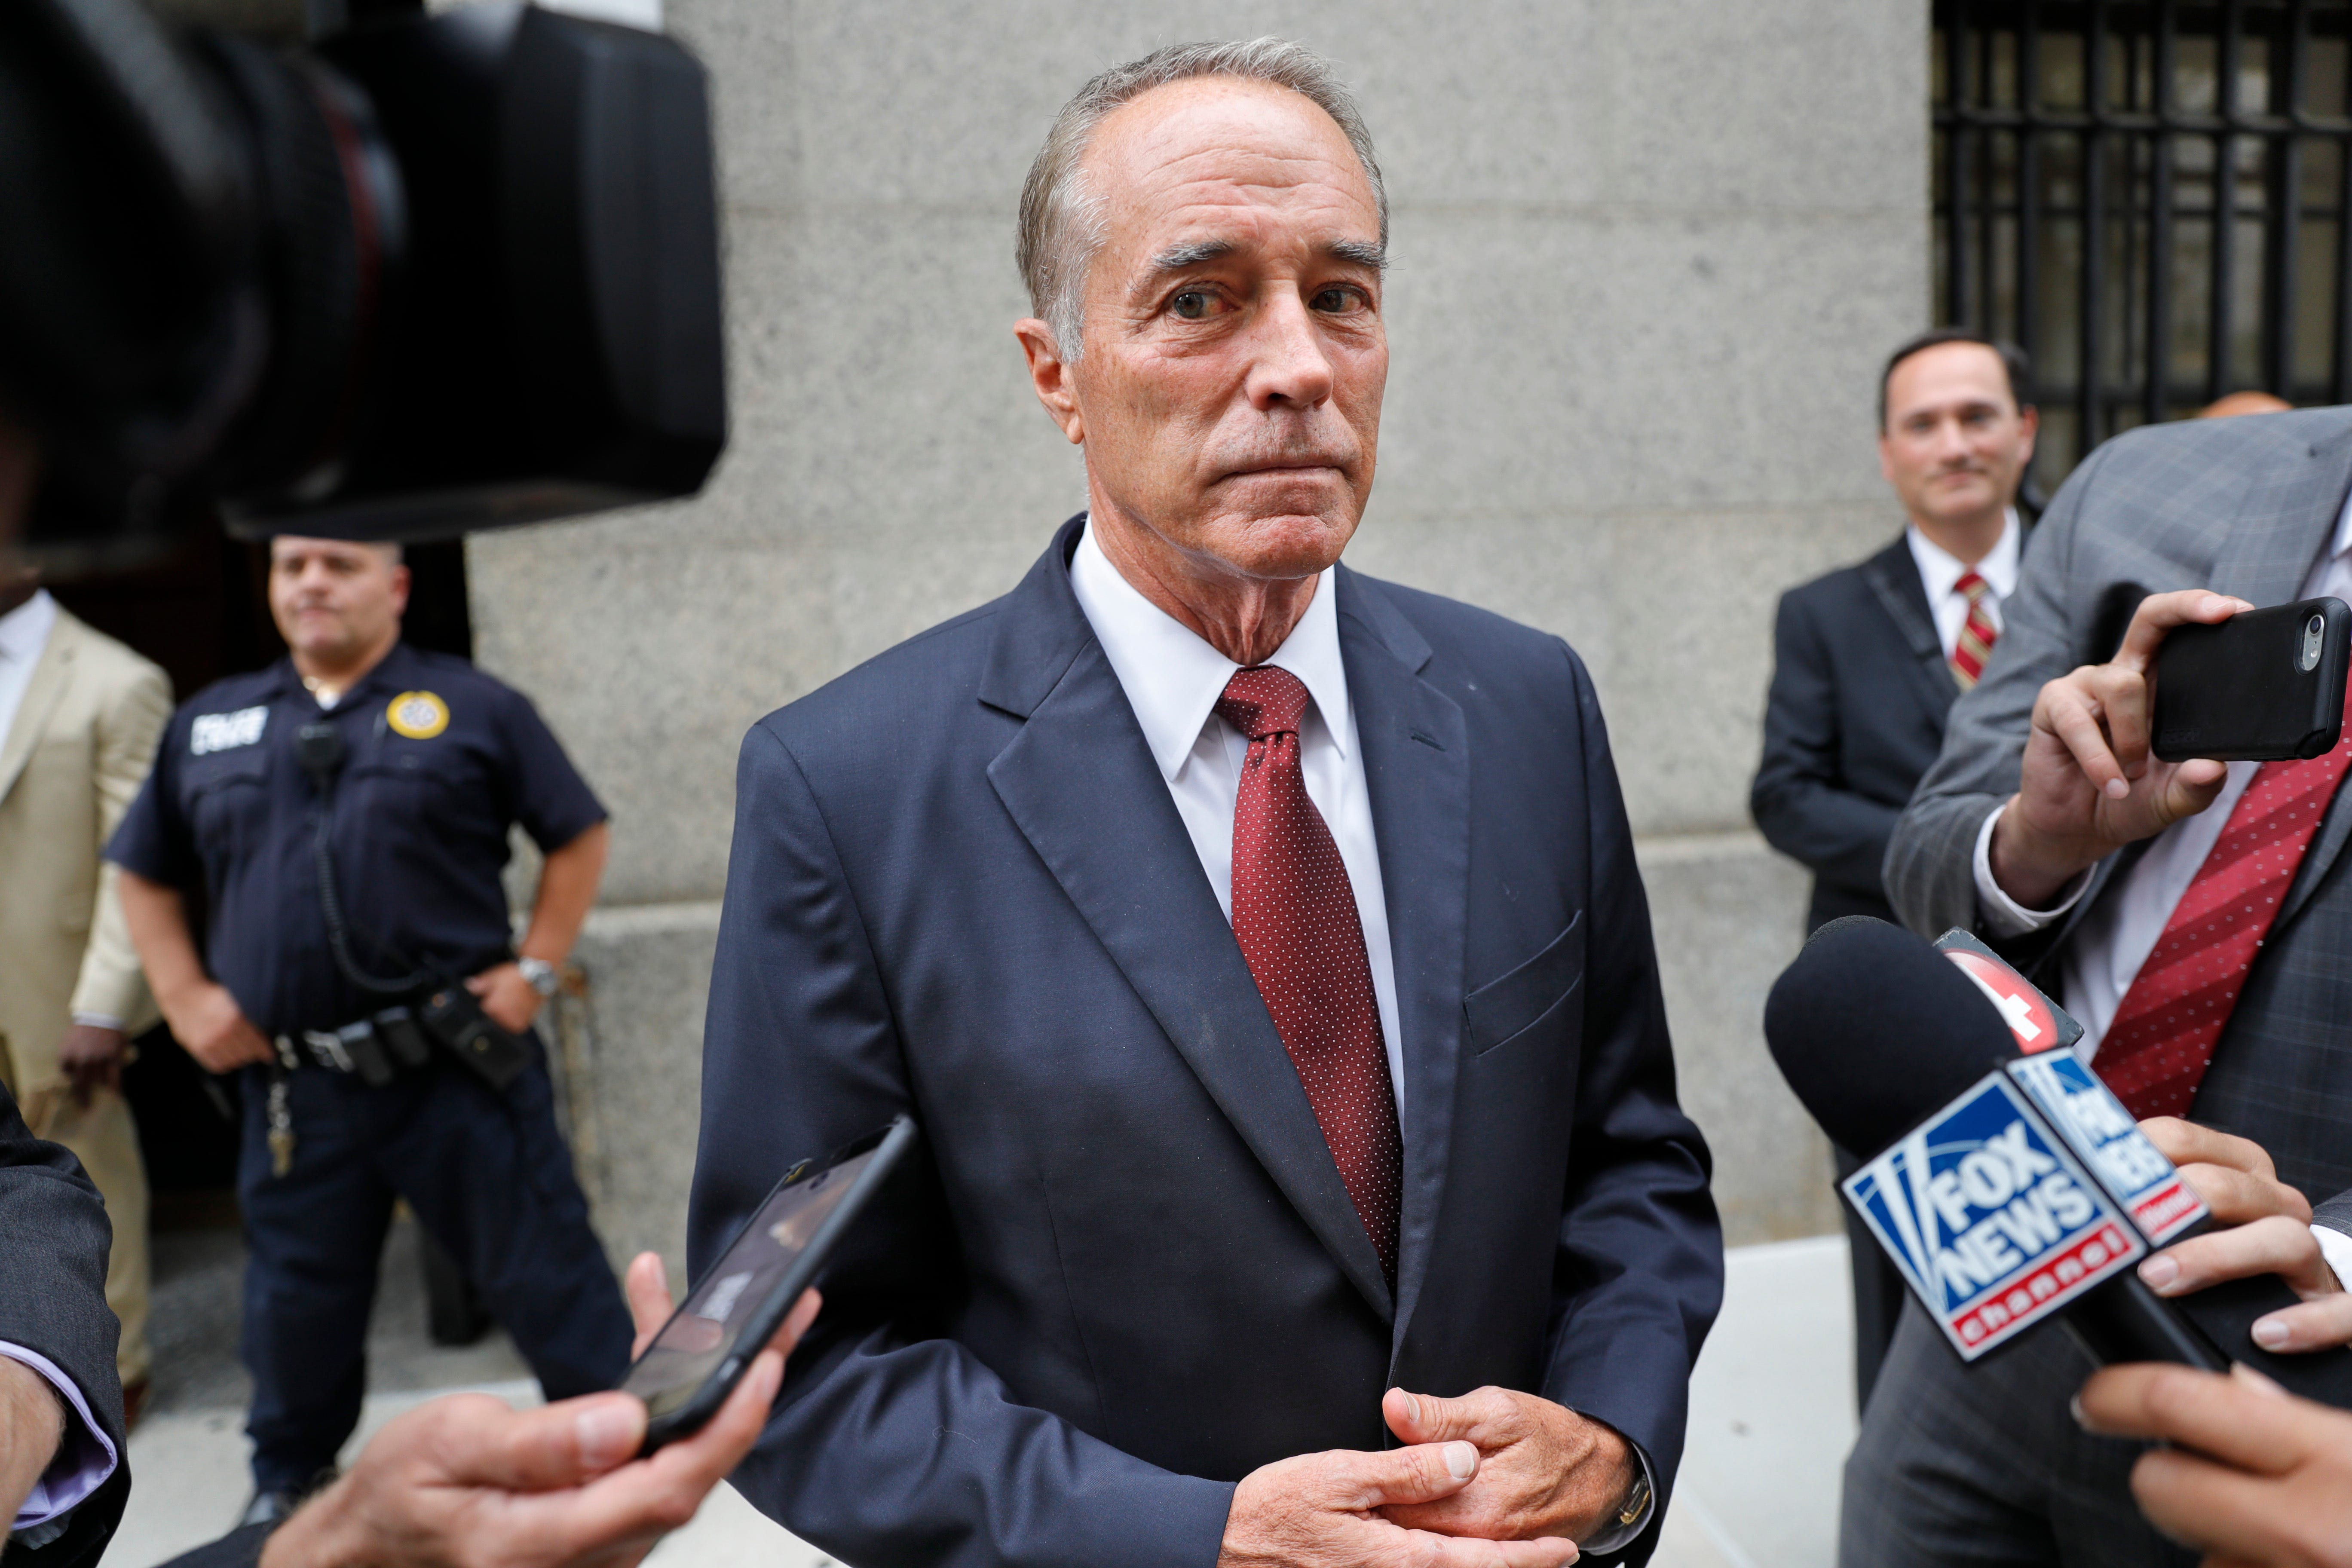 Rep. Chris Collins resigns ahead of guilty plea to insider-trading